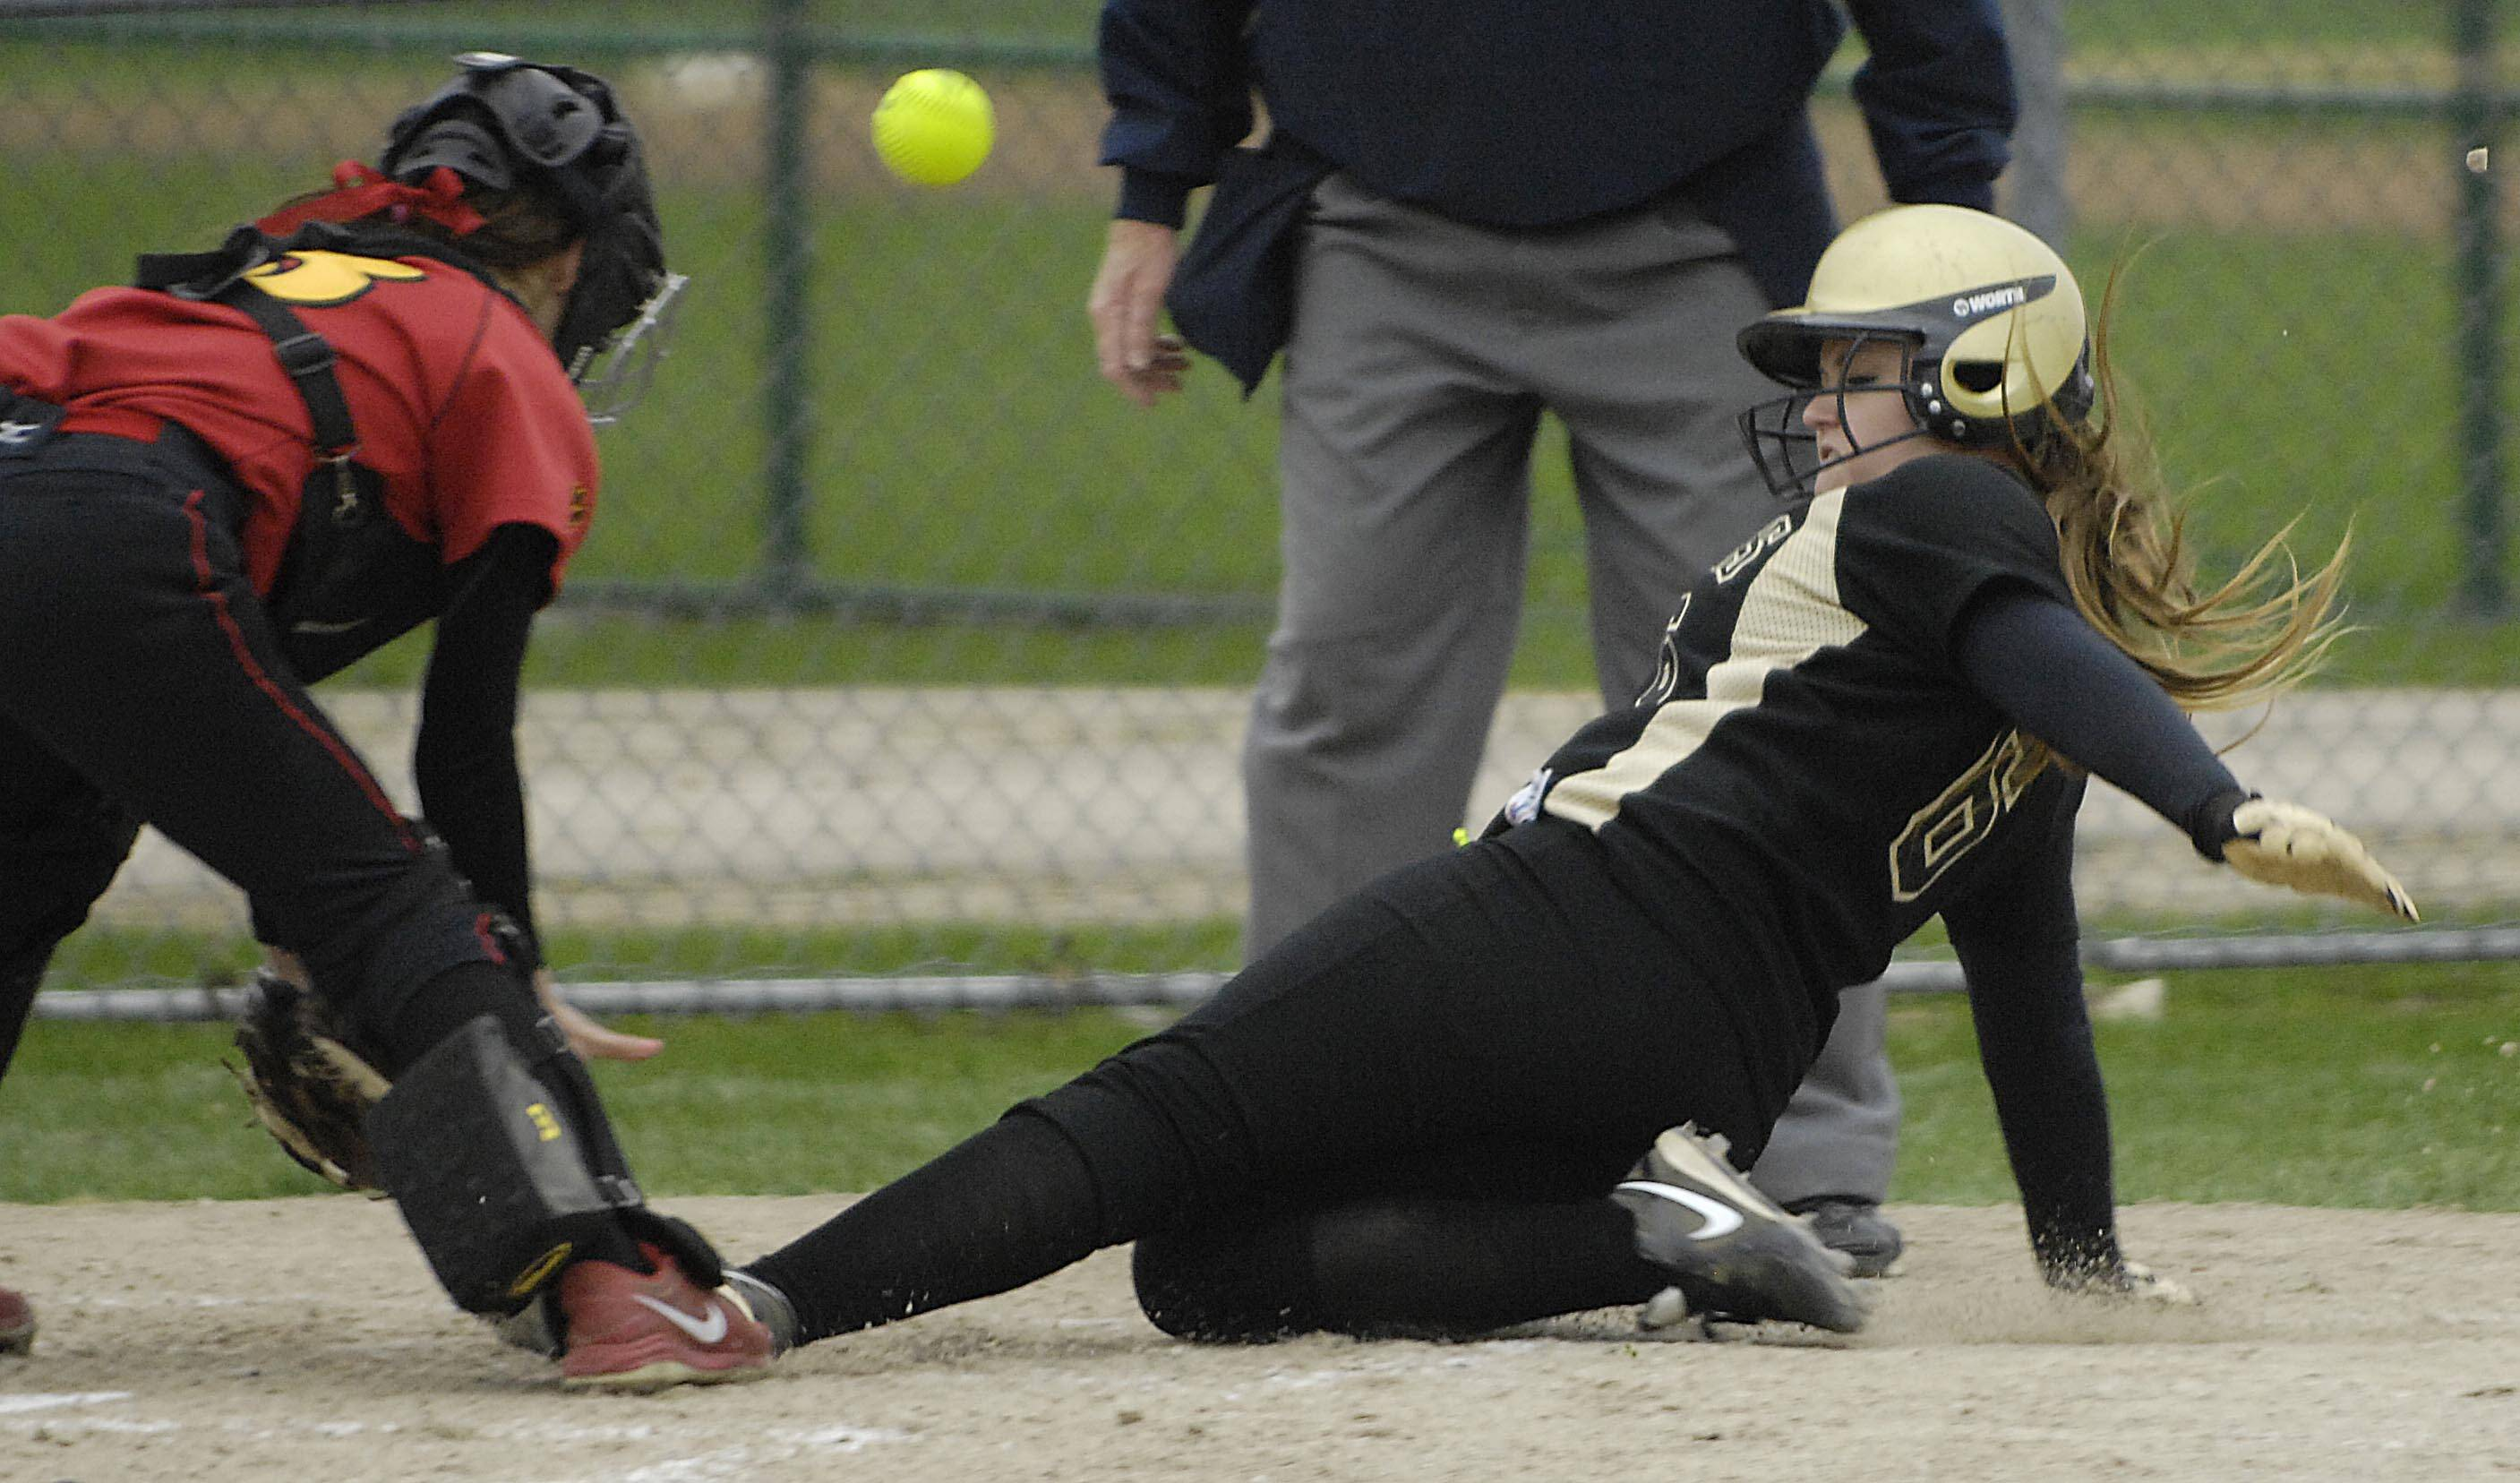 Streamwood's Melissa Malcolm scores the first run of the second inning on an outfield hit by teammate Mercedes Olmos as the ball bounces away from Batavia catcher Christina Karius Monday in Batavia.